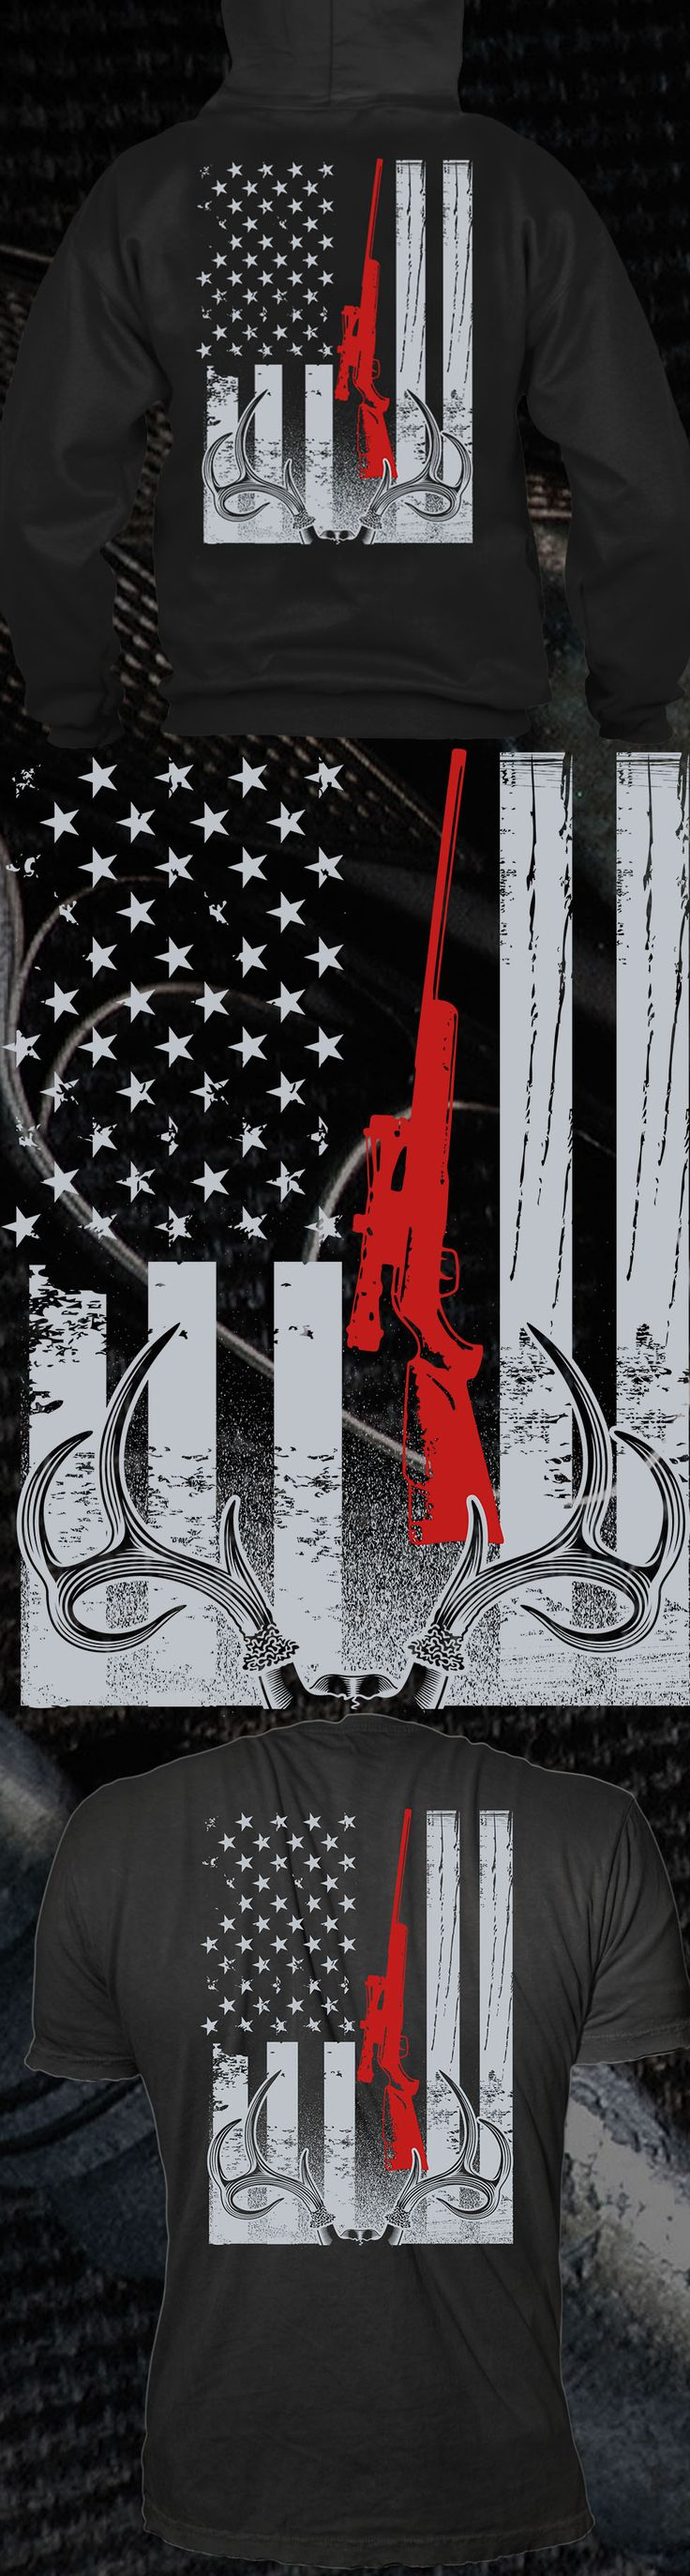 Deer Hunting American Flag - Get this limited edition T-Shirt and Hoodies just in time for the holidays! Only 2 days left for FREE SHIPPING, click to buy now!